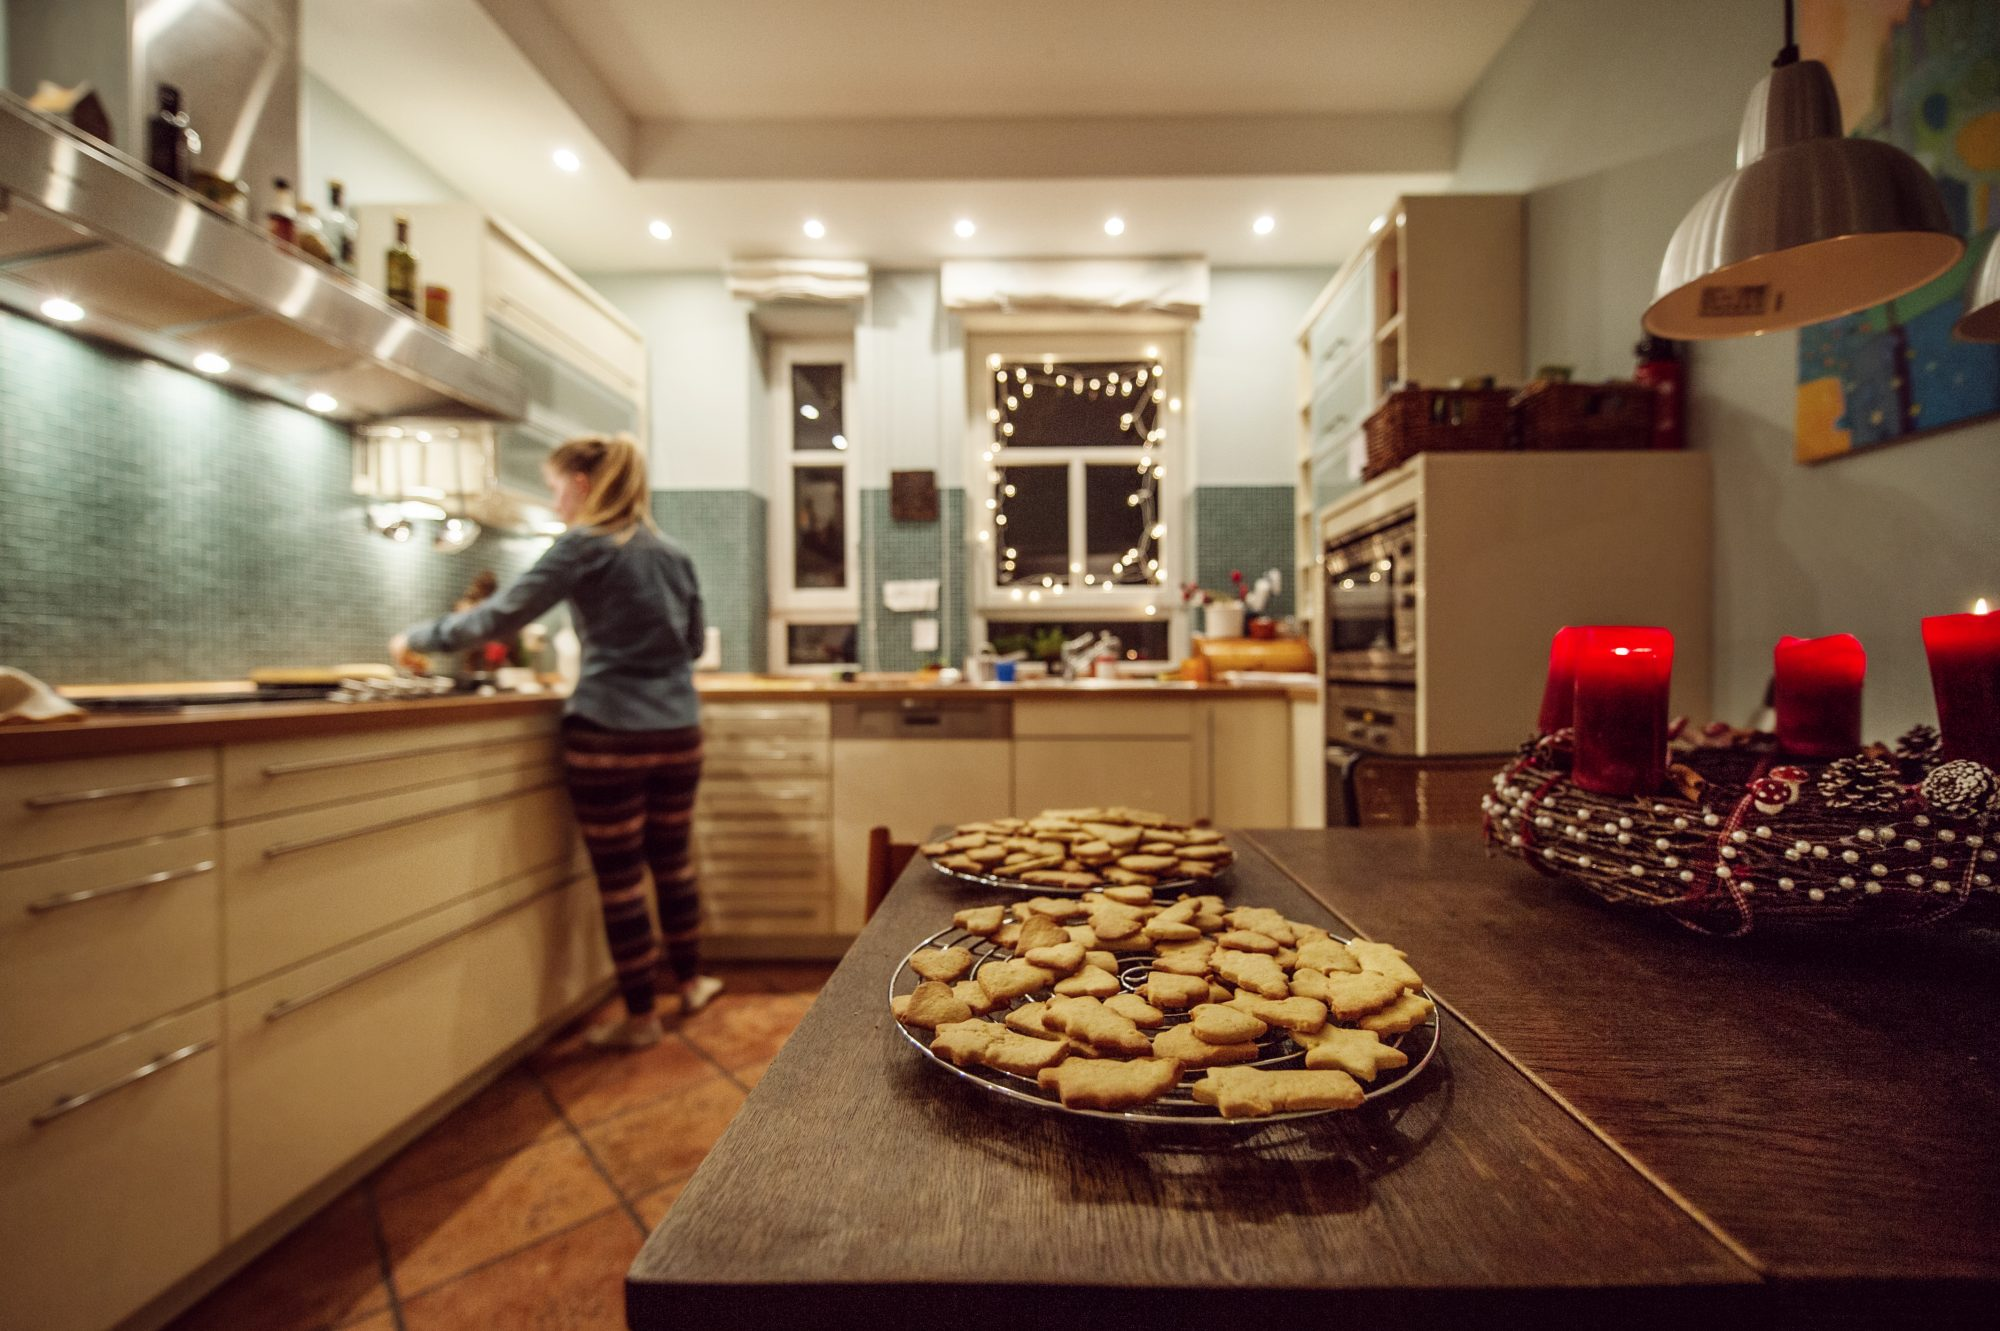 getty-holiday-kitchen-image